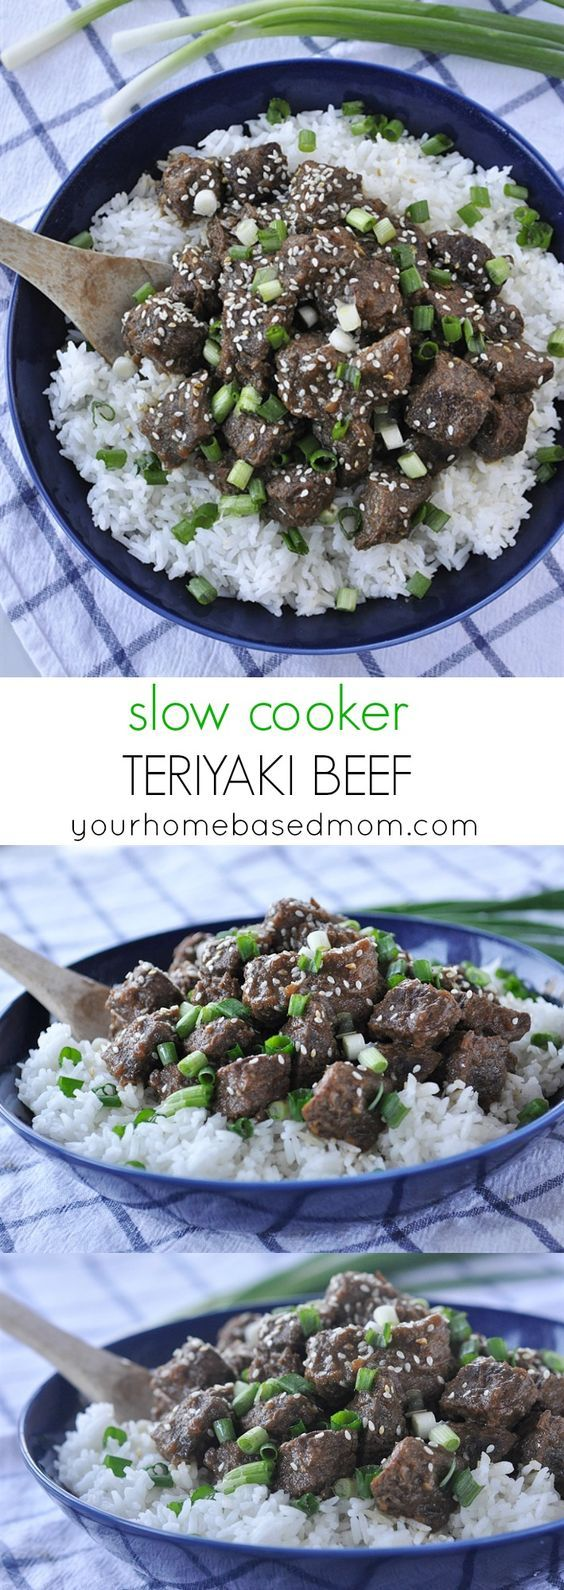 Slow Cooker Teriyaki Beef ~ a delicious and easy dinner recipe made in the crock pot!